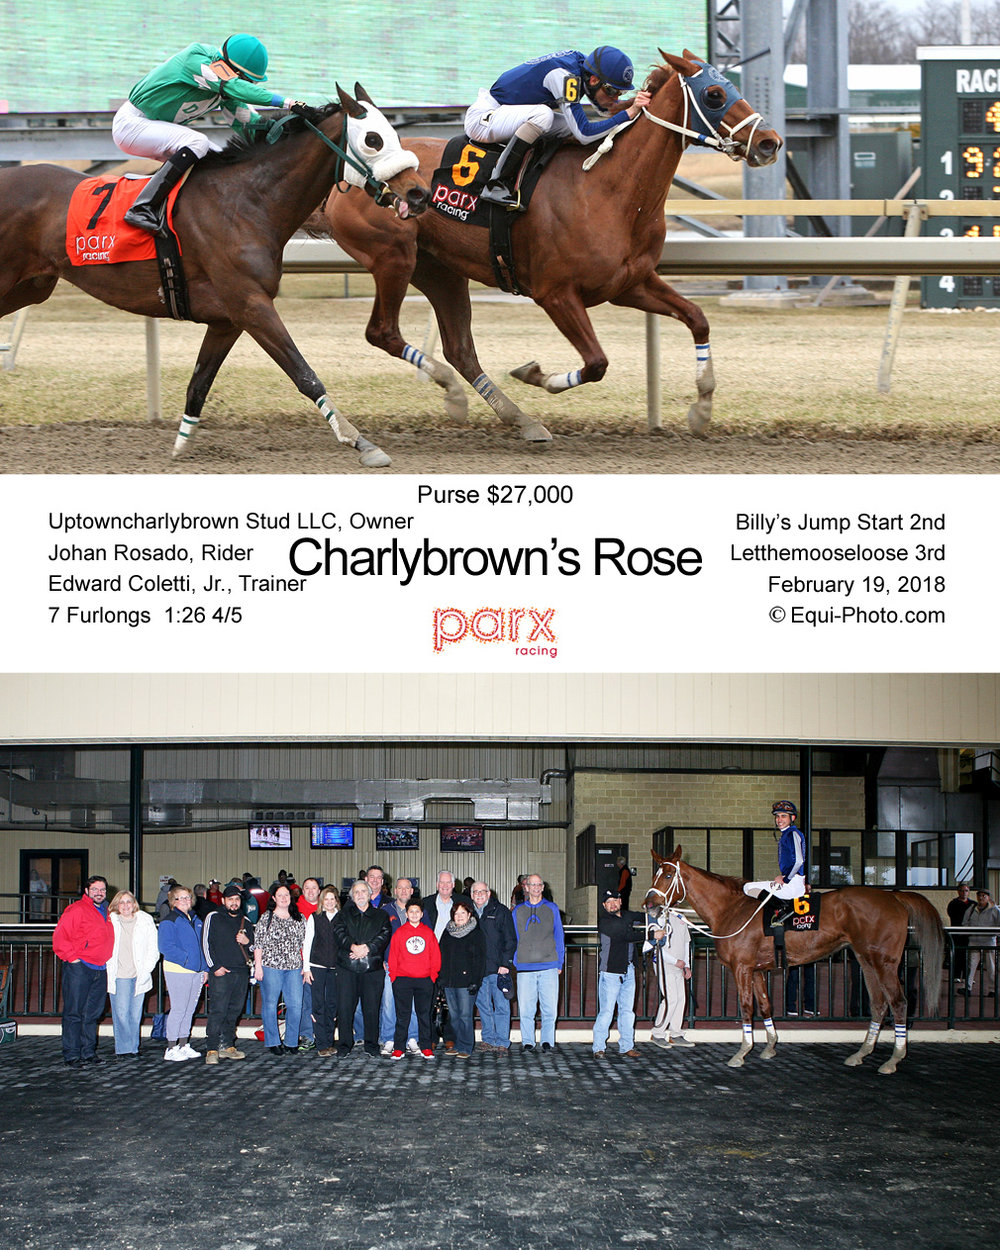 02-19-18 P 04 Charlybrown's Rose COMP.jpg